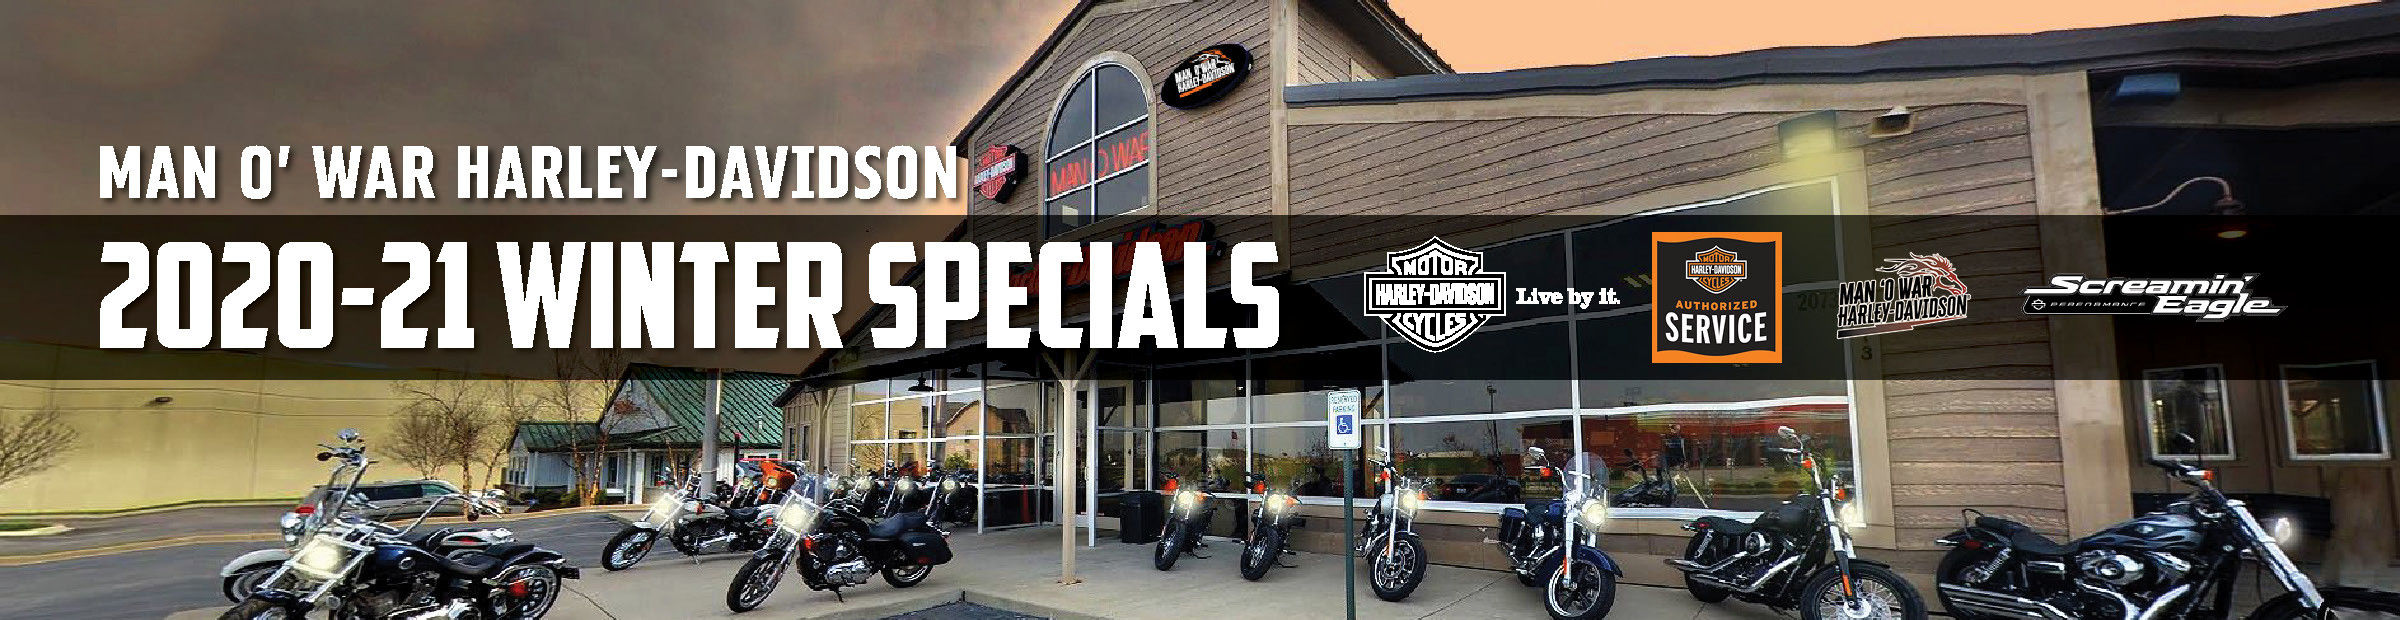 Winter Specials - Man O' War Harley-Davidson